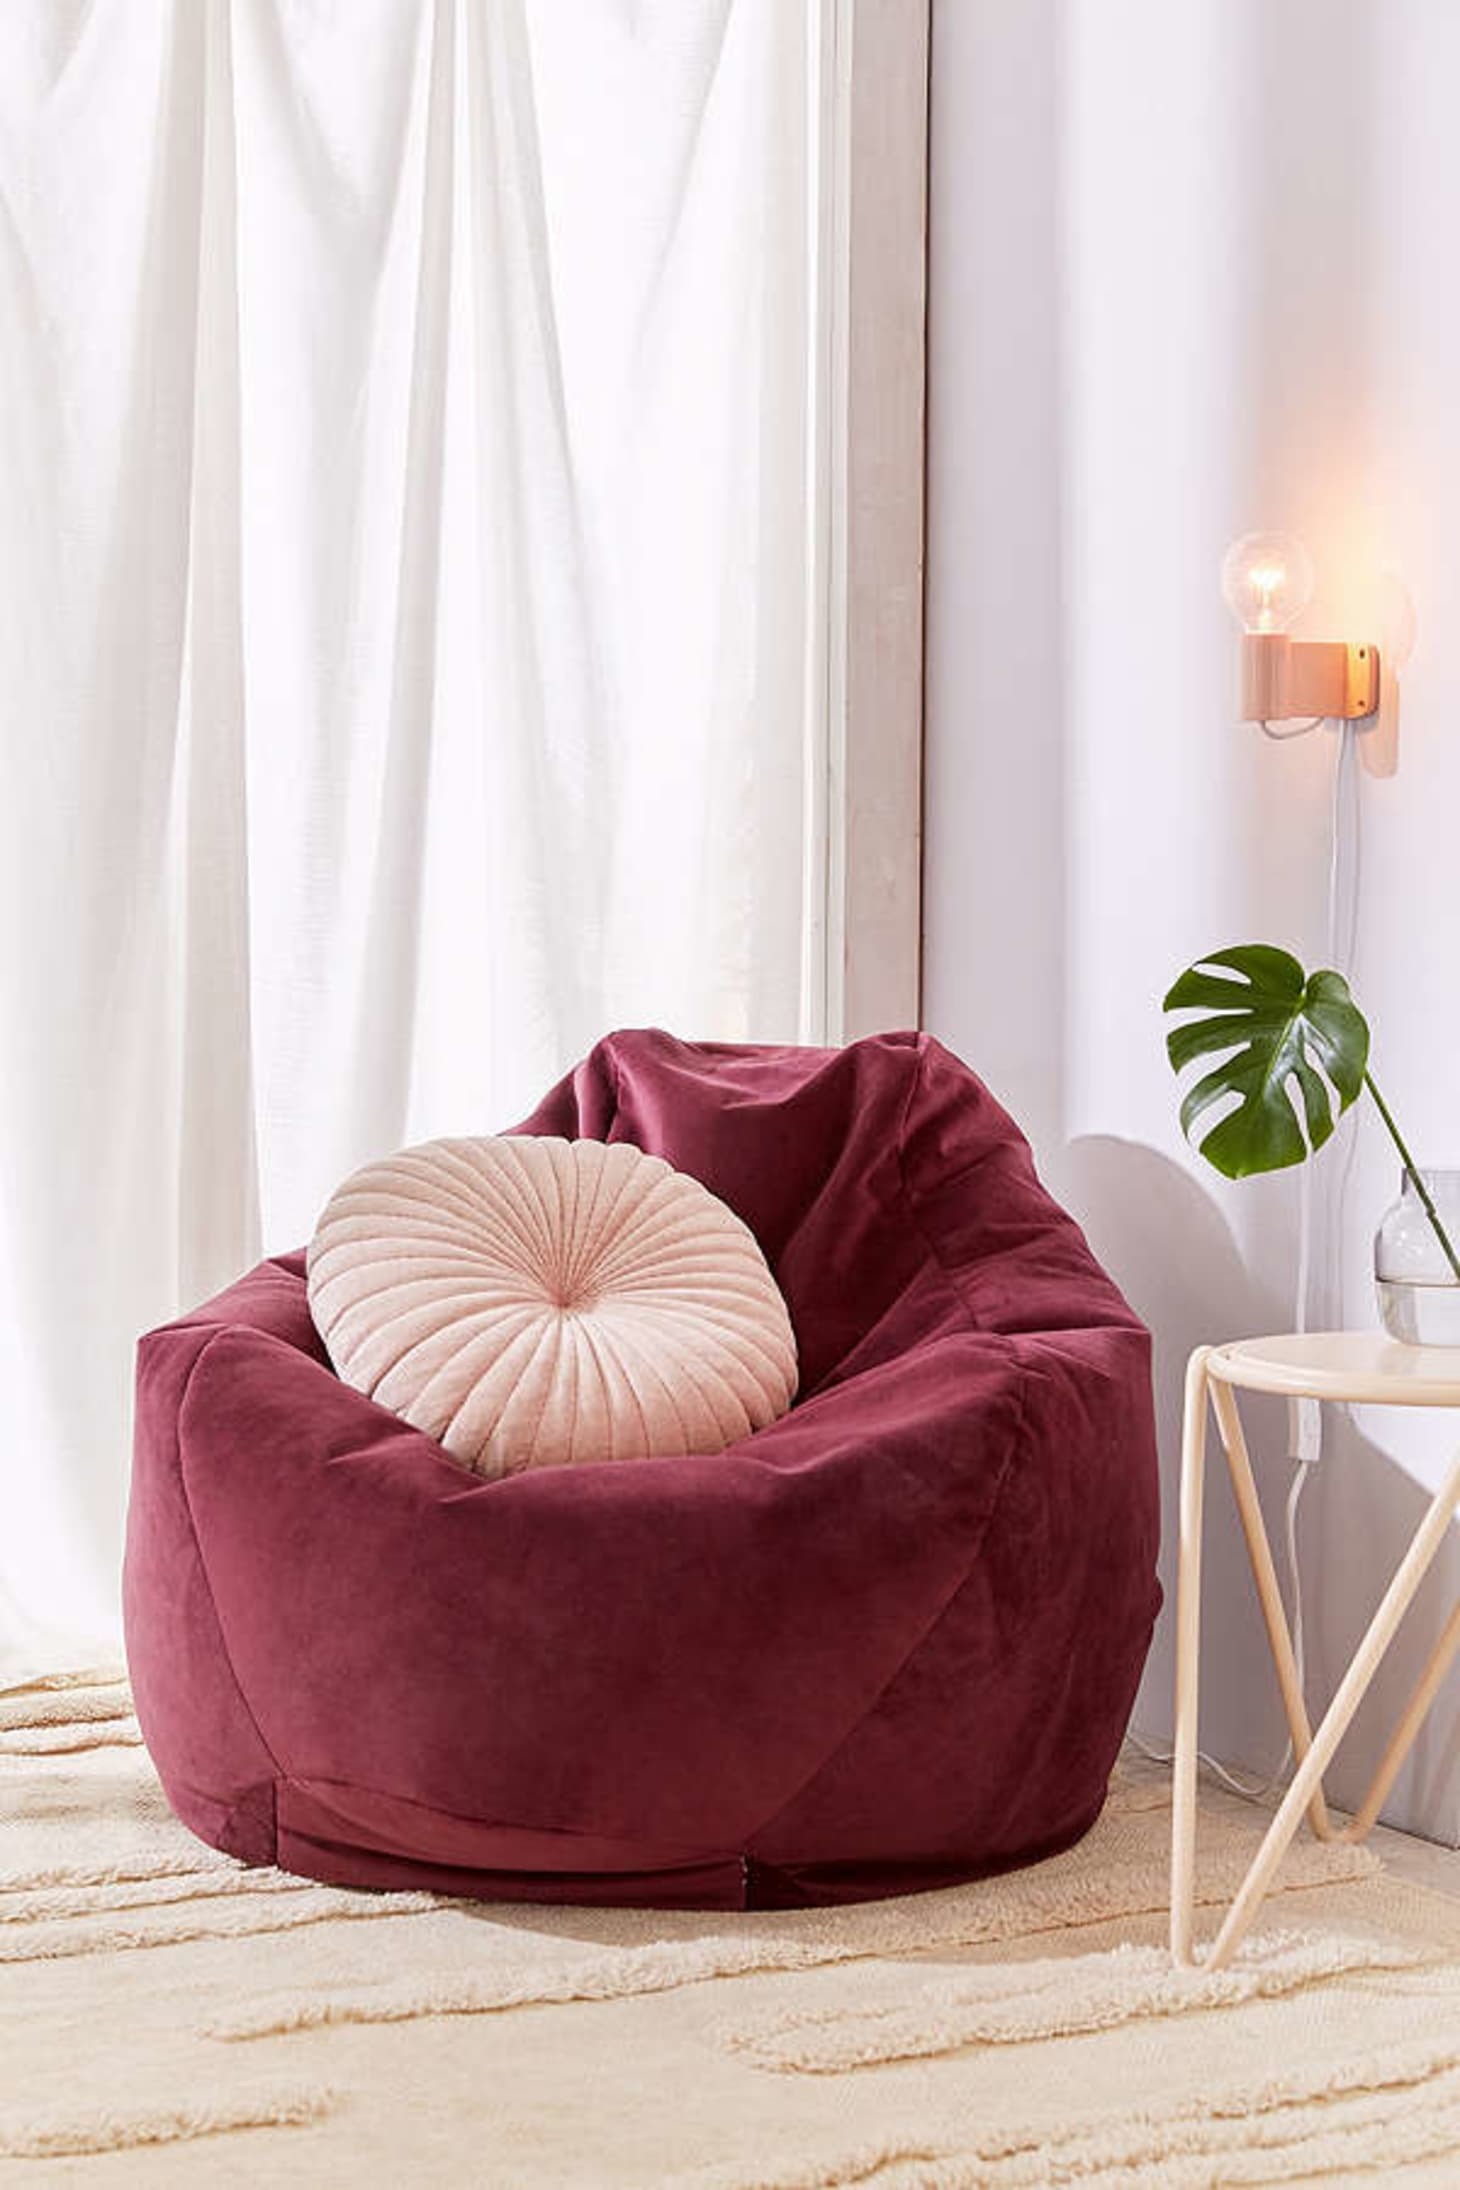 Sensational Believe It Or Not 10 Surprisingly Stylish Beanbag Chairs Onthecornerstone Fun Painted Chair Ideas Images Onthecornerstoneorg